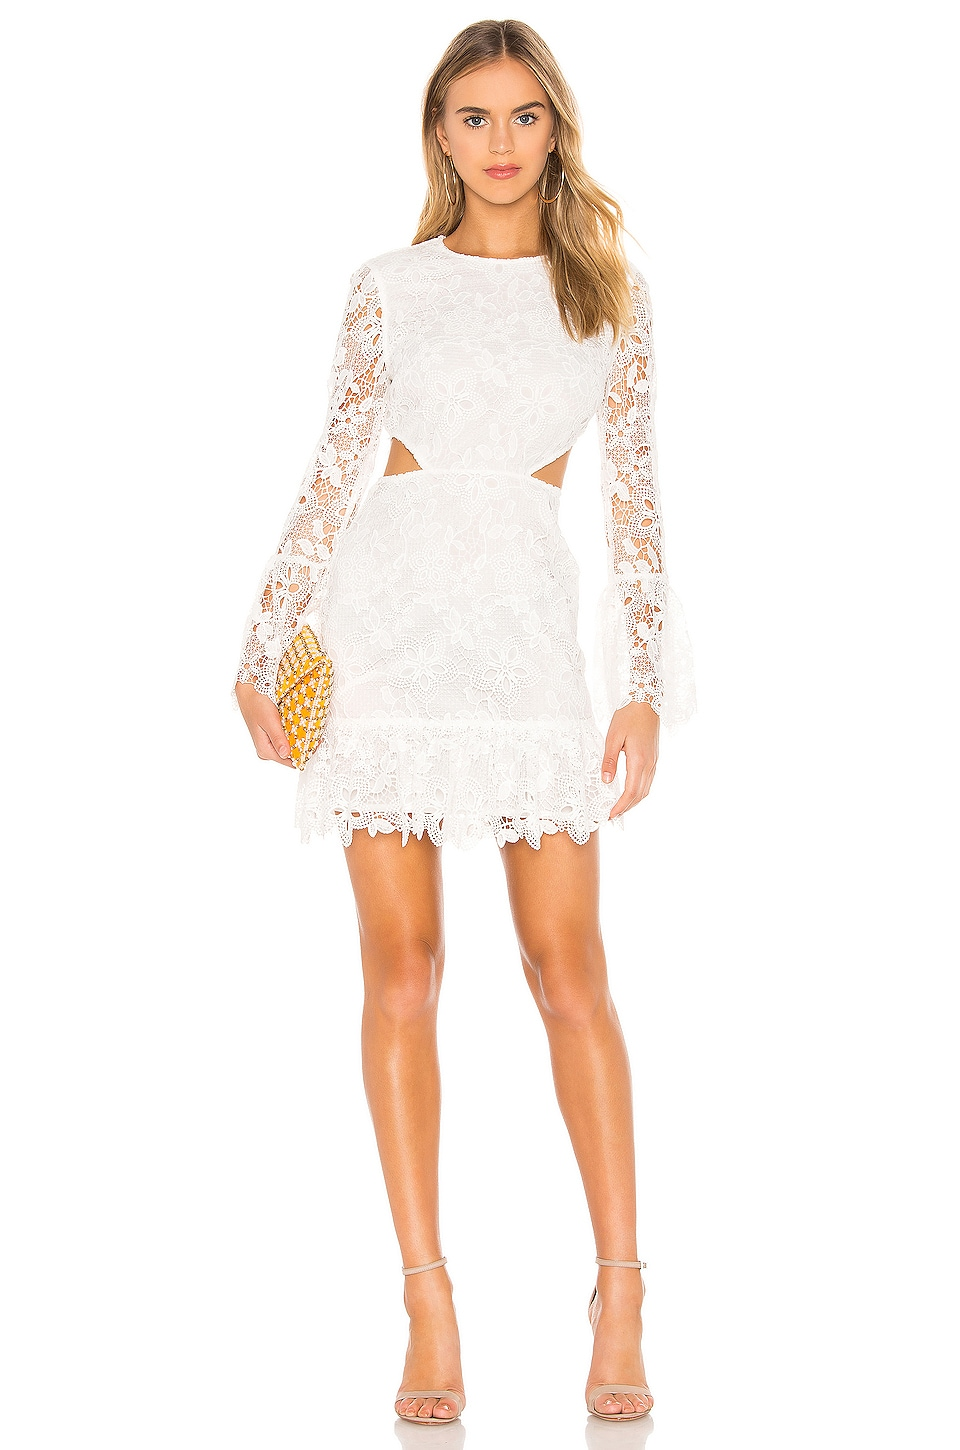 RACHEL ZOE Isabel Dress in Ecru